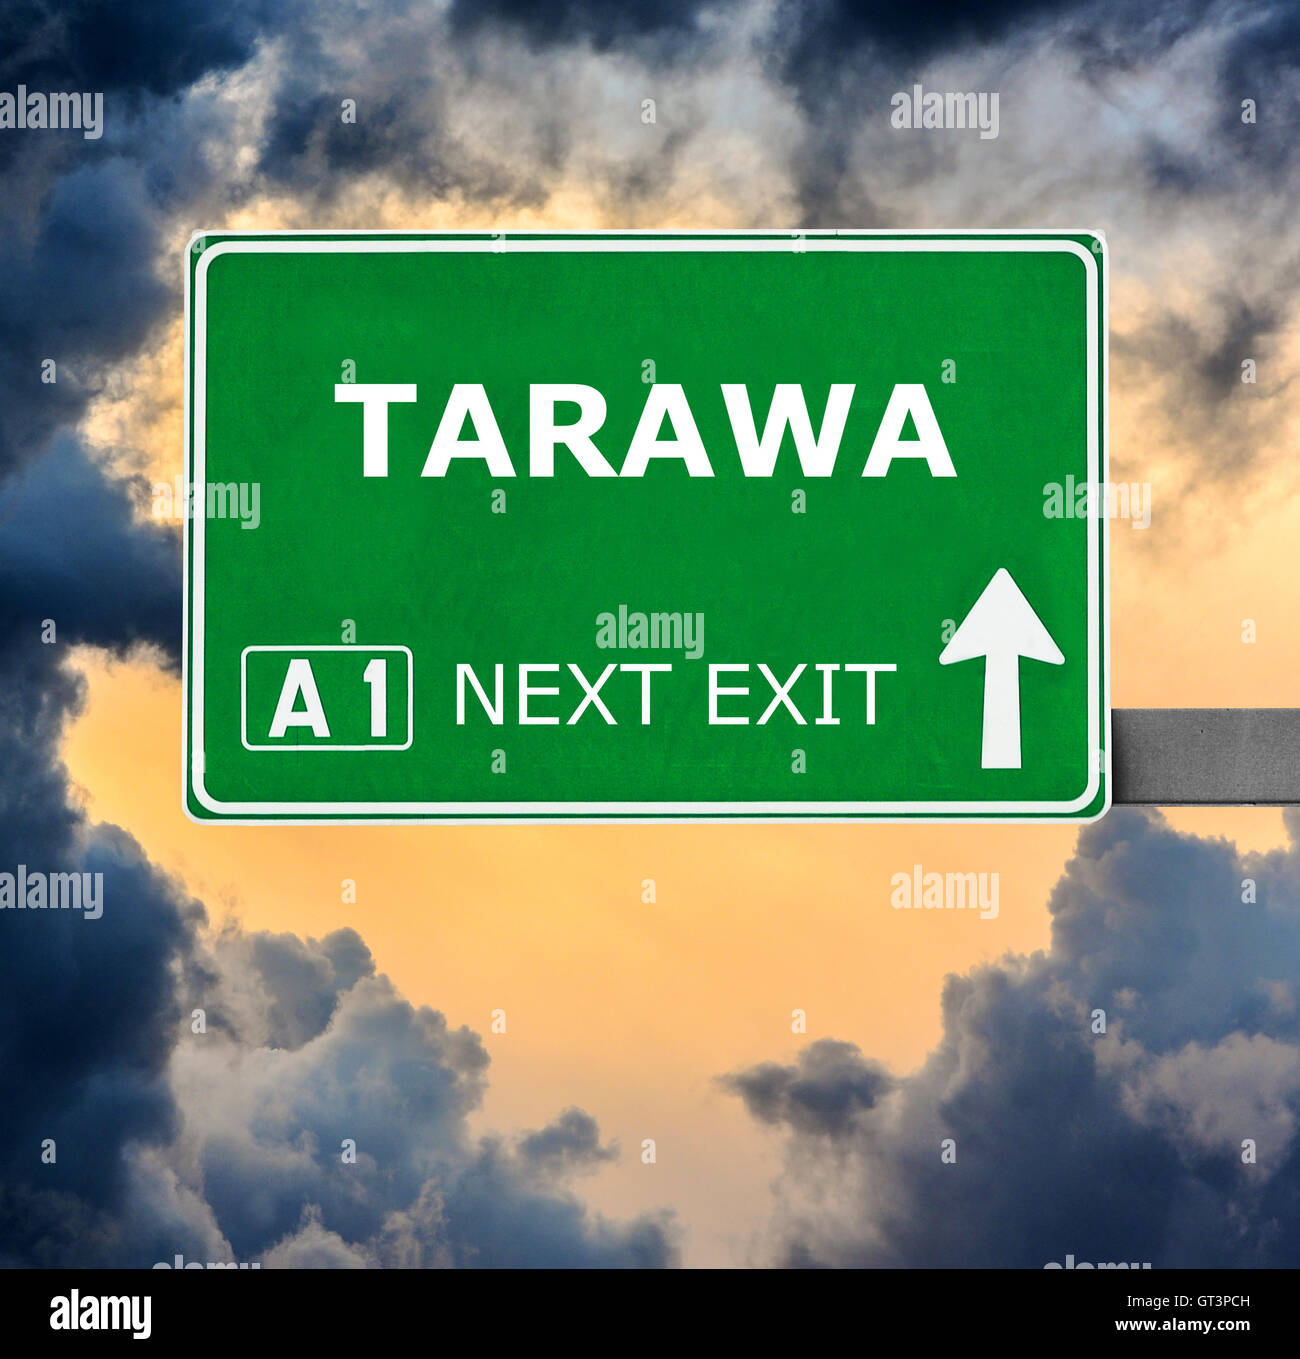 TARAWA road sign against clear blue sky - Stock Image